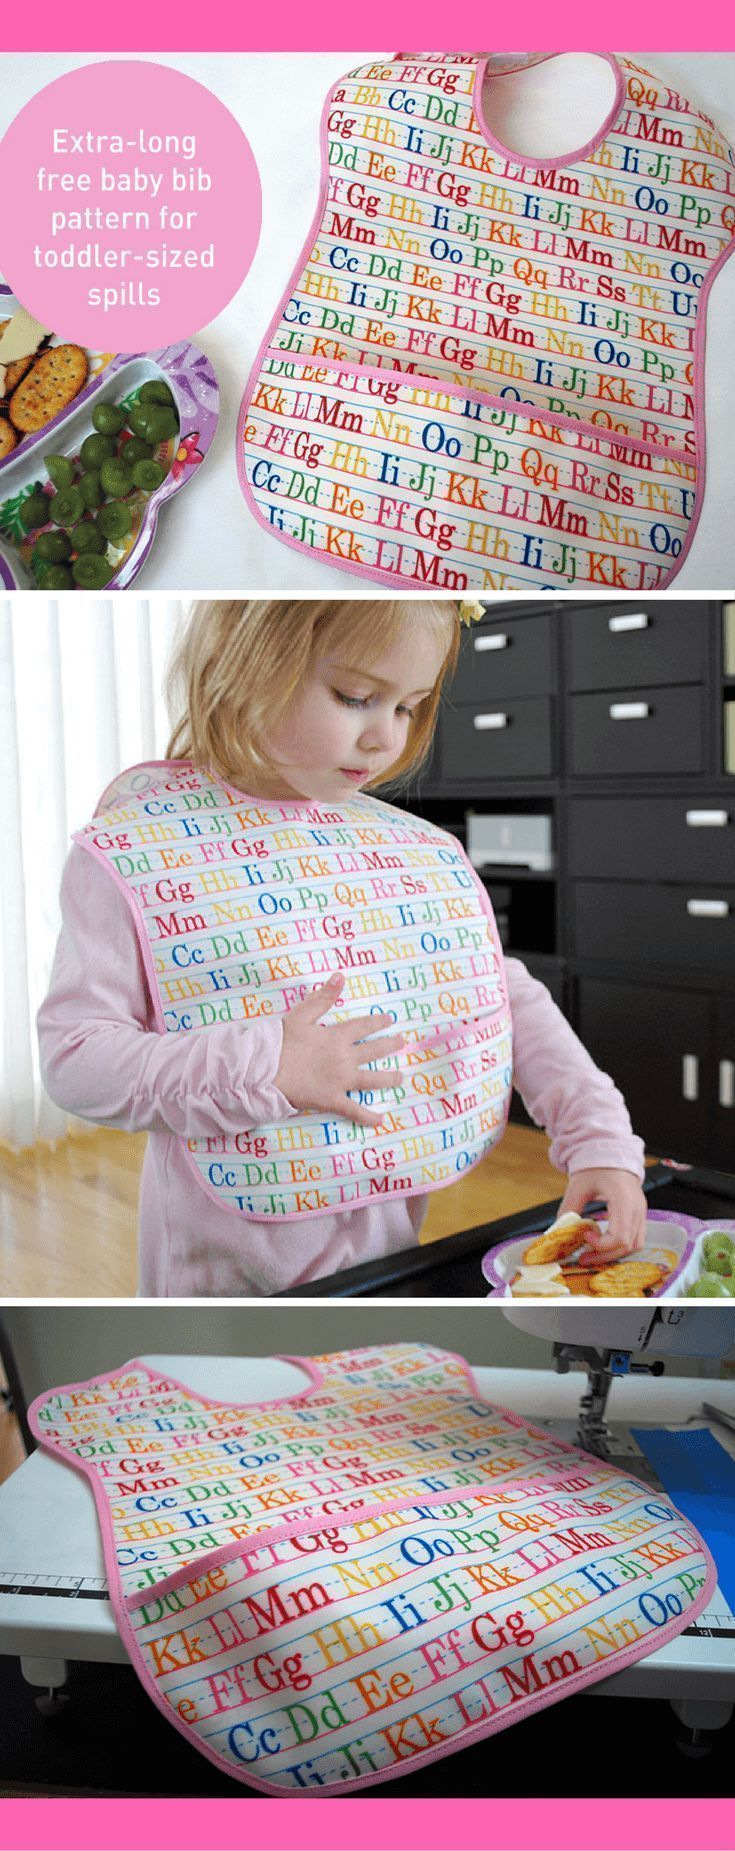 Extra-long baby bib free sewing pattern for todder-sized spills. Make this longer bib with a large pocket for toddler and reduce your laundry! Makes a great DIY baby gift. #freesewingpattern #diy #bib #kids #baby